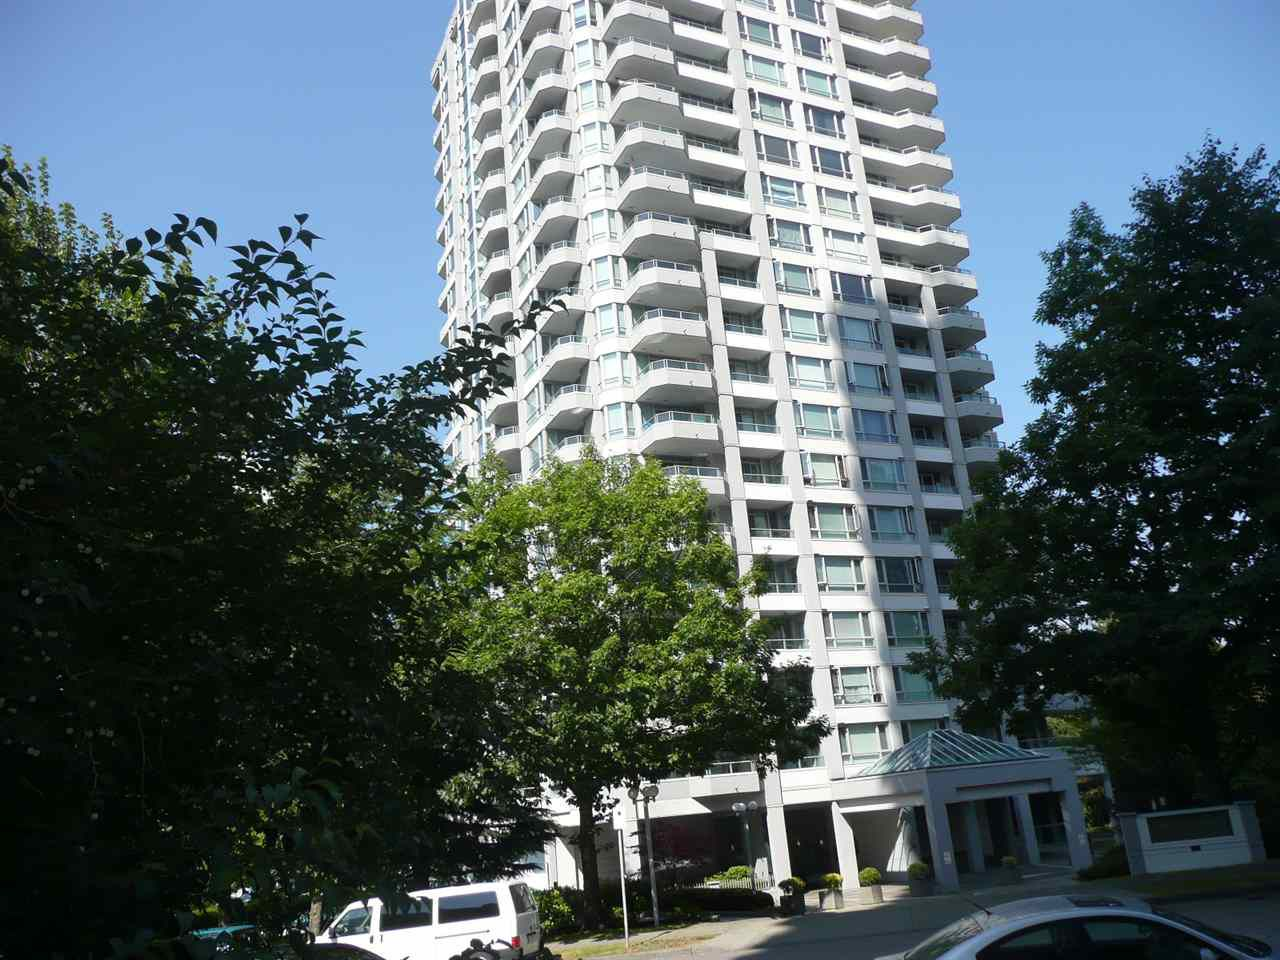 """Main Photo: 310 4825 HAZEL Street in Burnaby: Forest Glen BS Condo for sale in """"THE EVERGREEN"""" (Burnaby South)  : MLS®# R2330530"""